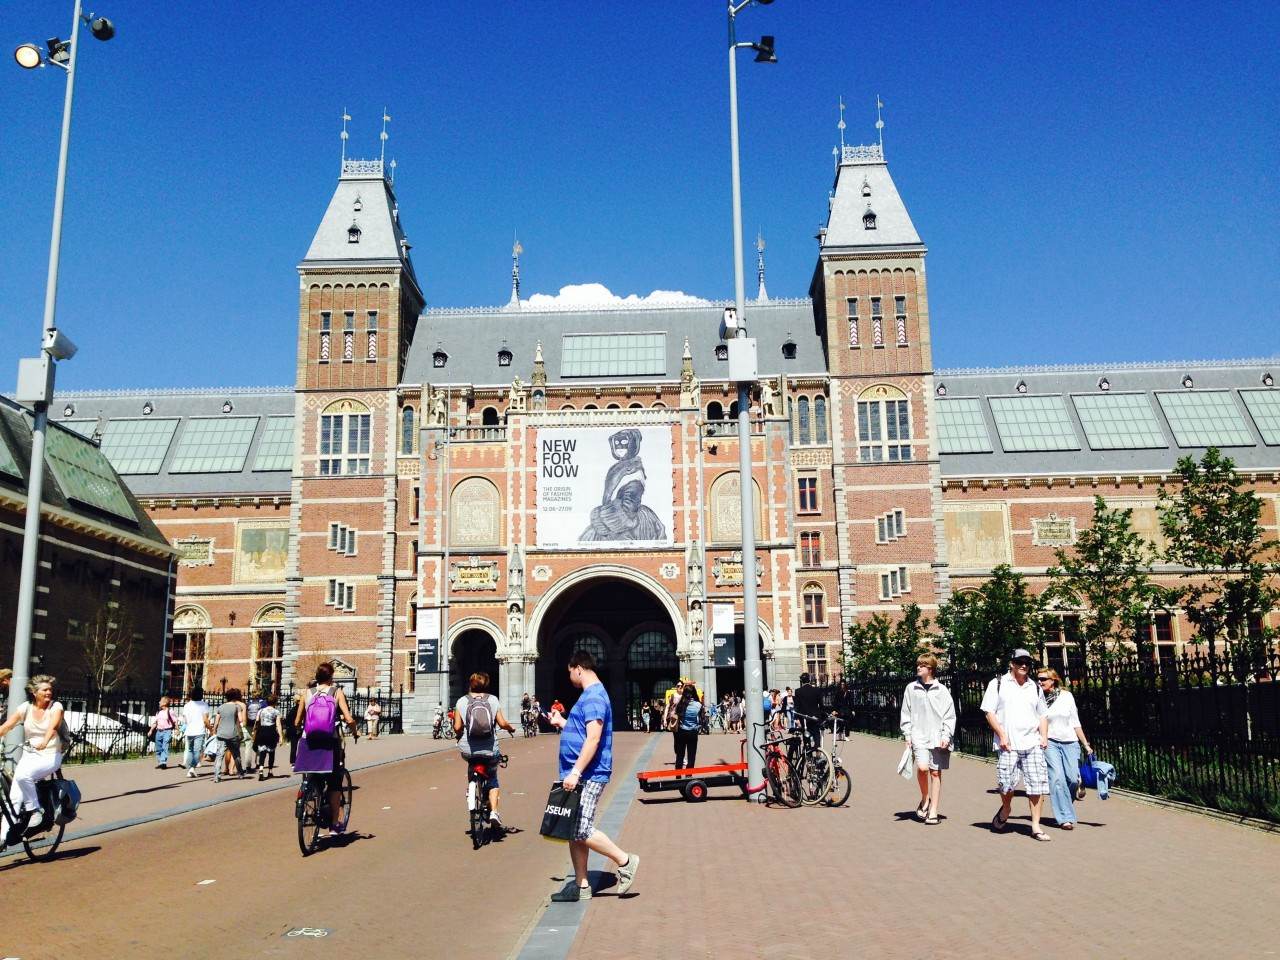 The entrance to the Rijksmuseum in Museum Square